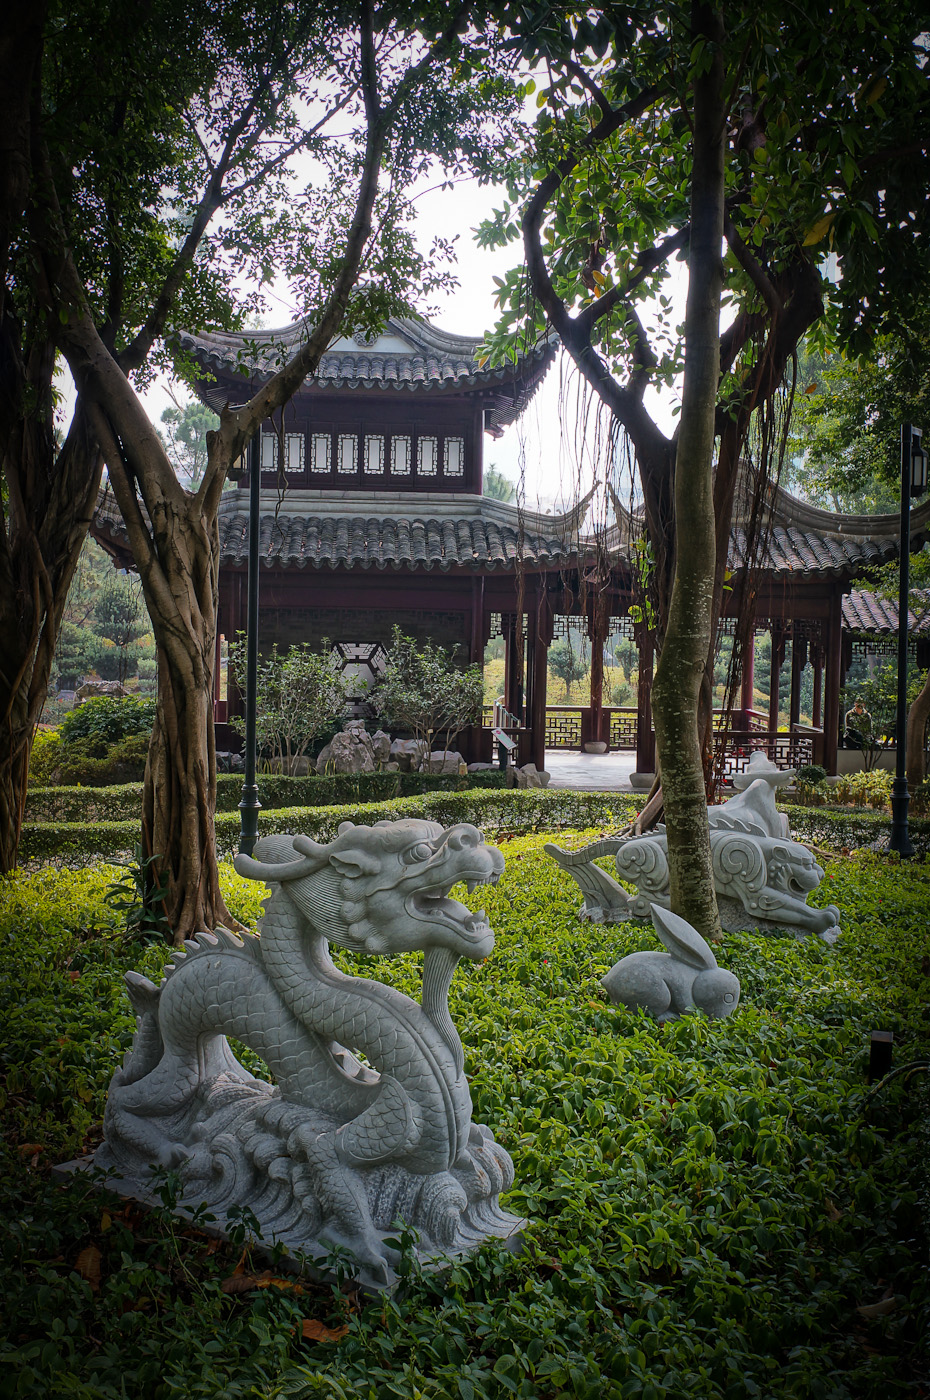 Two Dragon statues inside the Walled City Park in Hong Kong